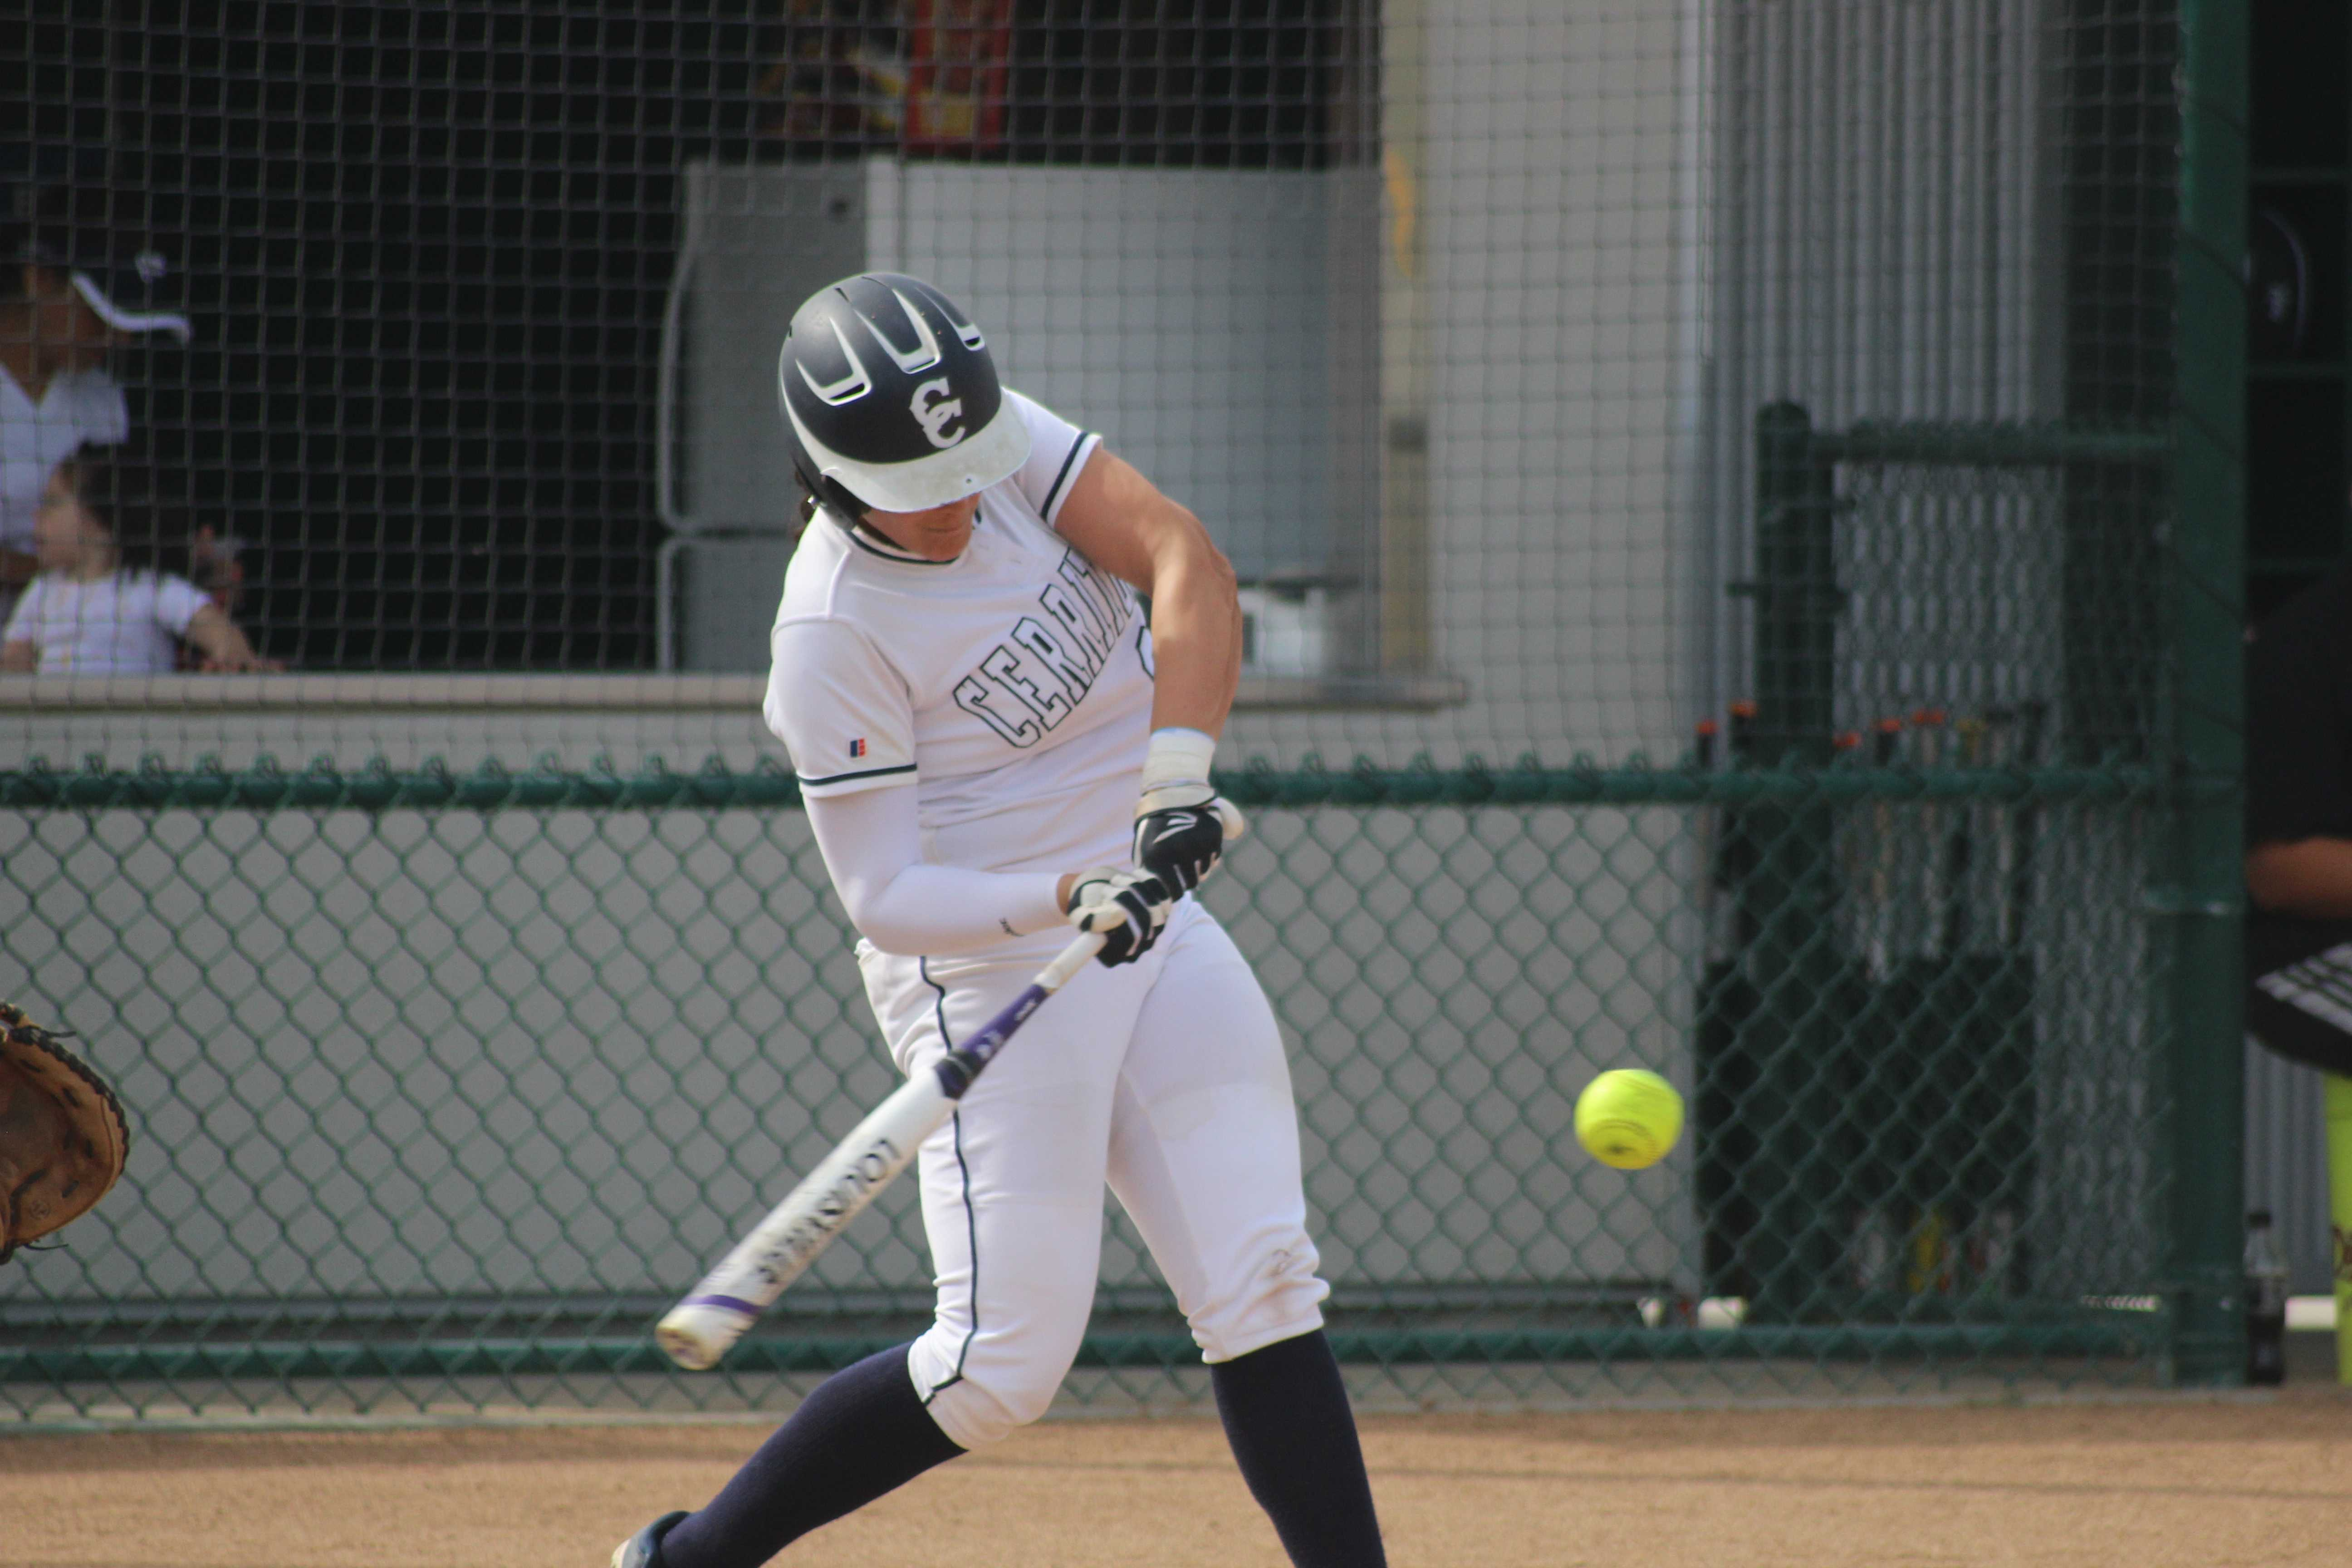 Cerritos catcher Krystal Purkey connects for a grand slam in the first inning. She hit another home run in the fourth for a 16-6 Falcons victory. Photo credit: Monica Gallardo